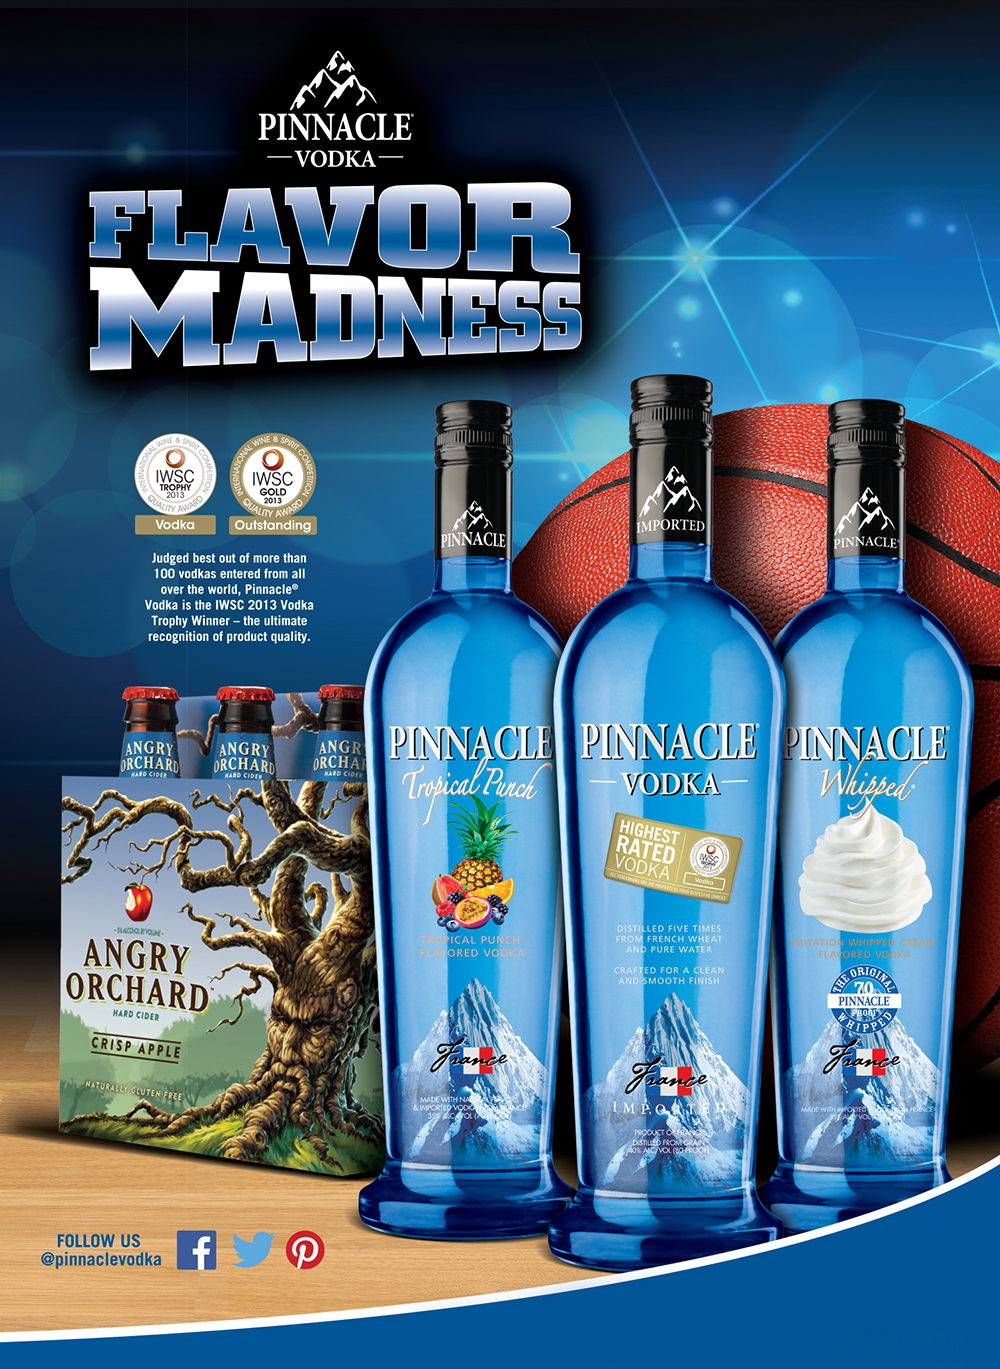 Pinacle_Vodka_Angry_Orchard_Flavor_Madness_ON_DECK_CS.jpg